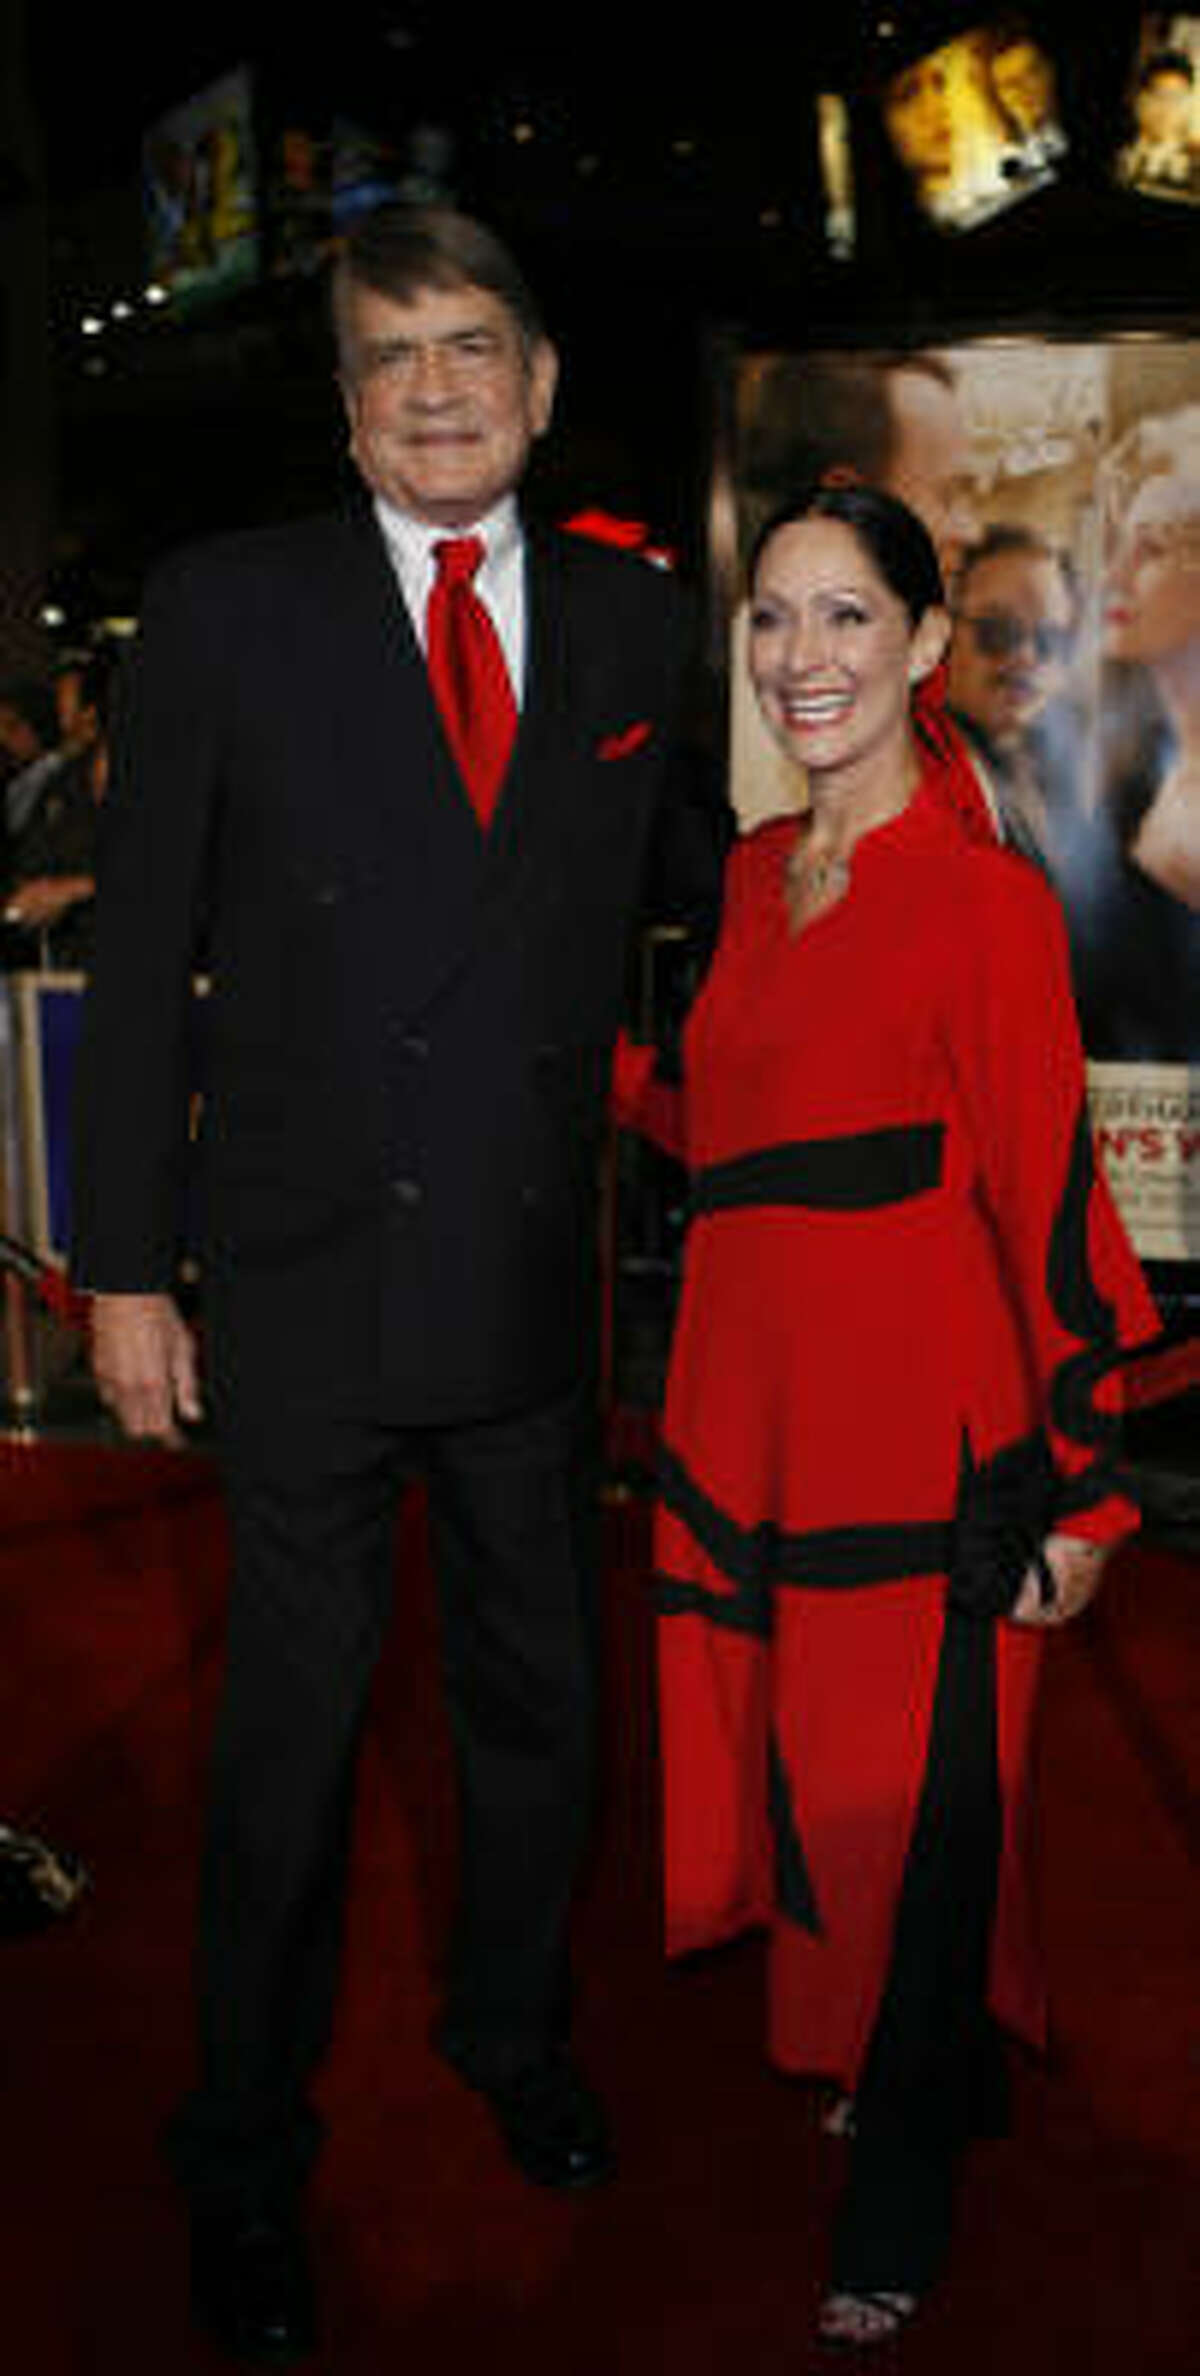 Charlie Wilson and his wife, Barbara, attend the premiere of Charlie Wilson's War at Universal Studios in Los Angeles.